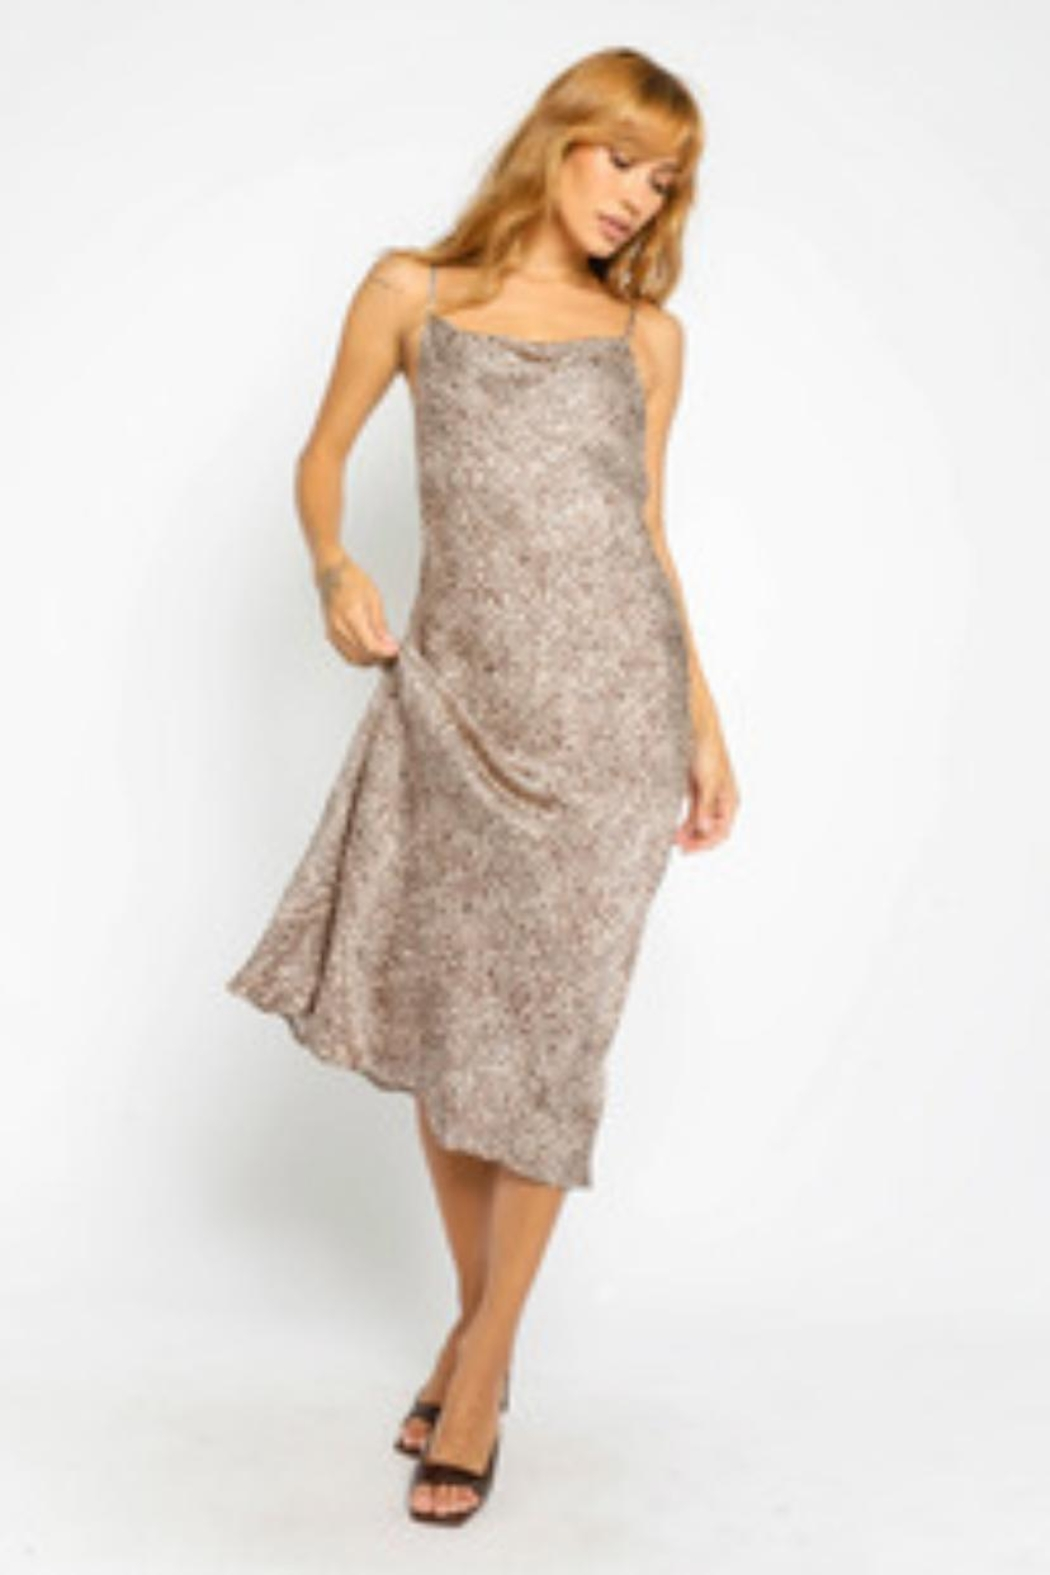 Olivaceous Animal Print Slip-Dress - Main Image